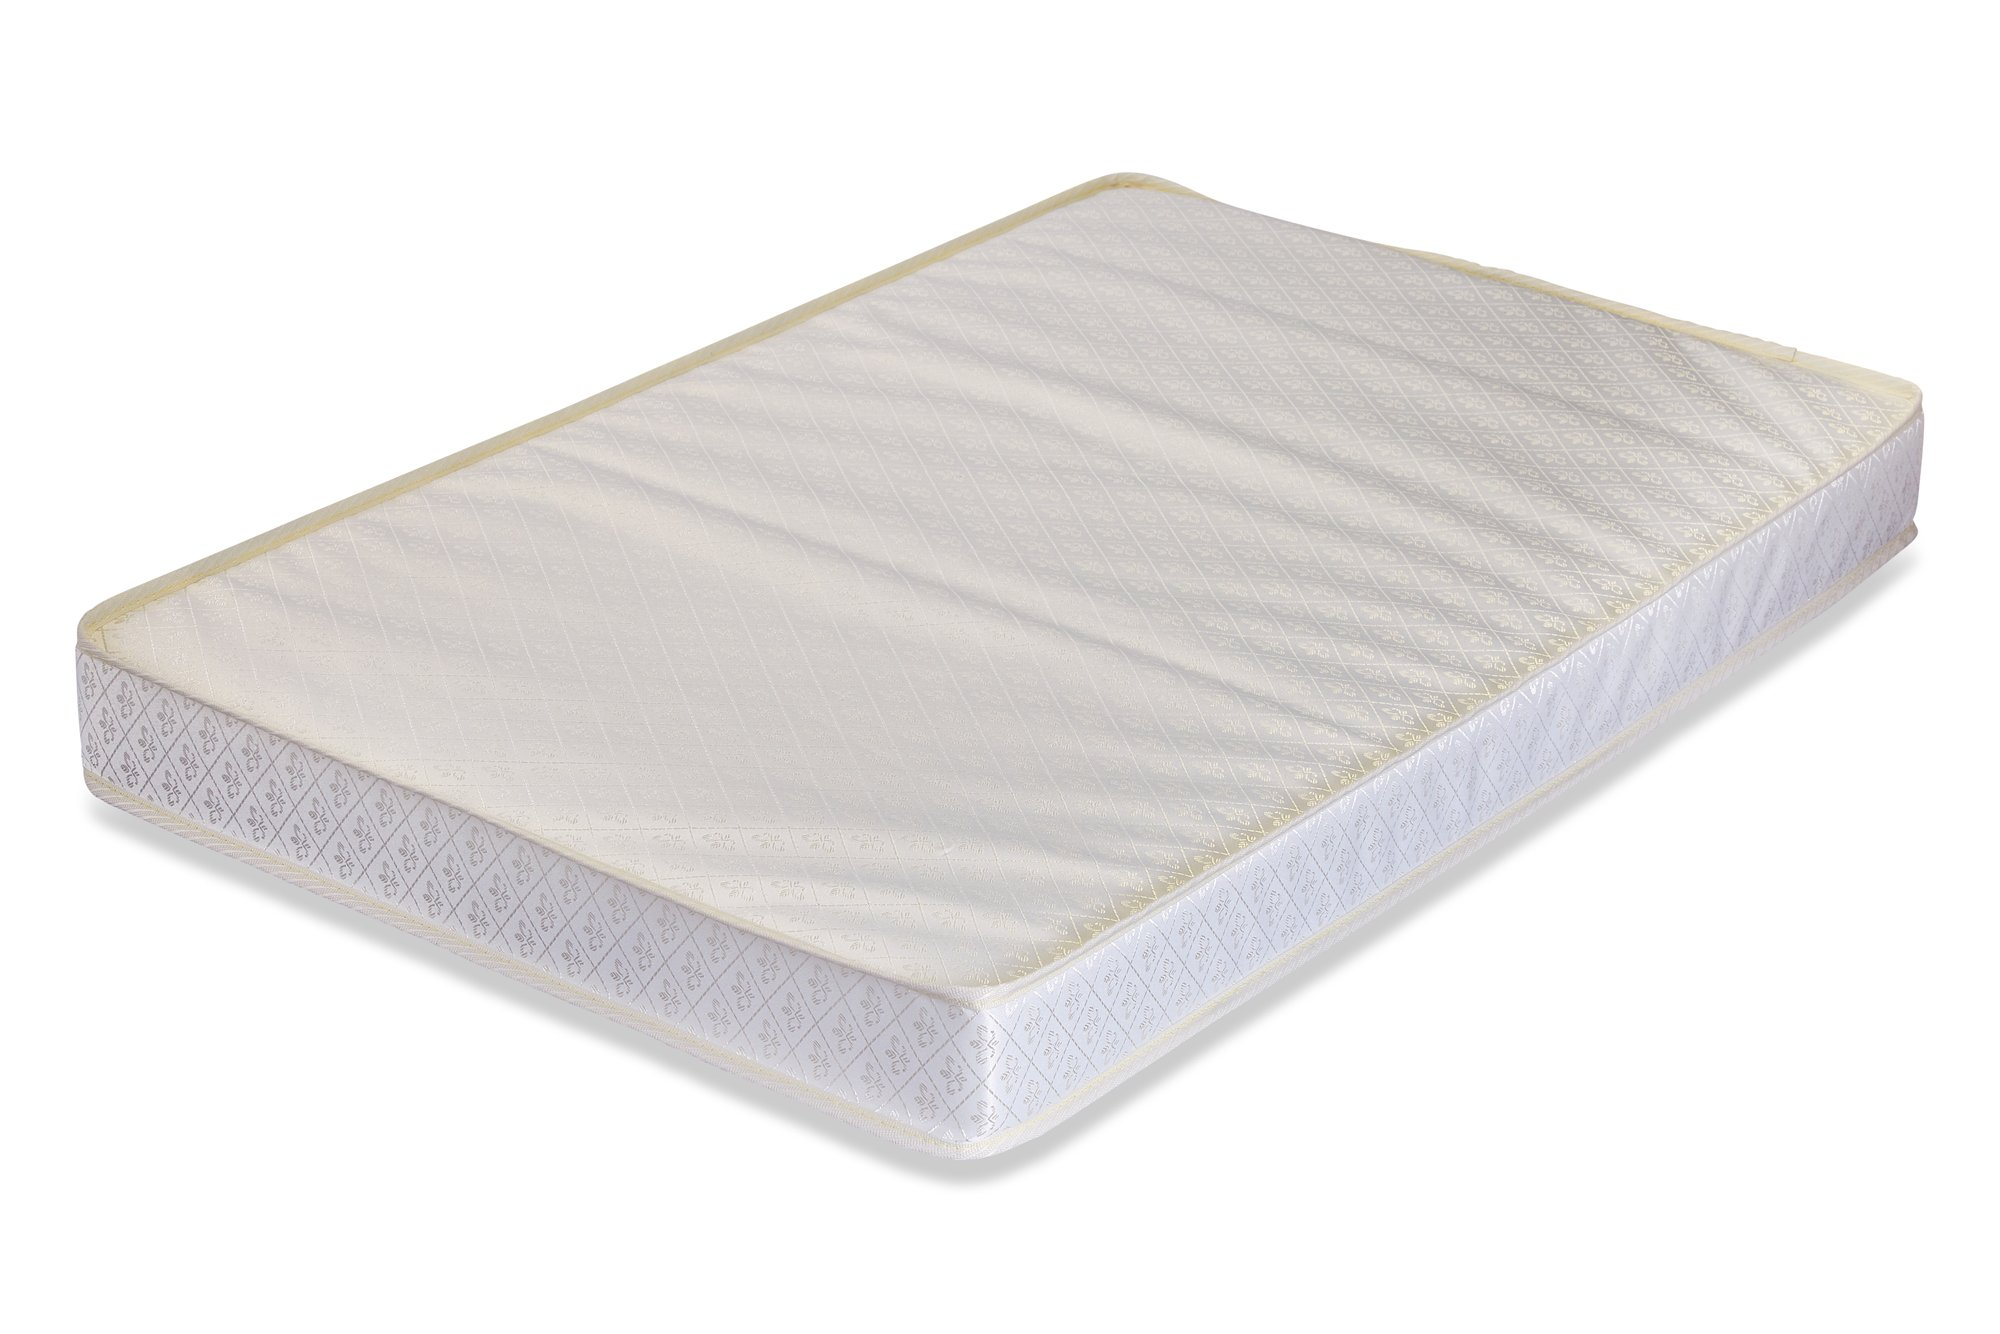 LA Baby 3'' Portable/Mini Crib Mattress with Organic Cotton Layer - Made in USA with Waterproof, Easy to Clean, Hypo-Allergenic, Anti-Microbial & Non-Toxic Cover, 24 x 38 - Made in USA by L A Baby